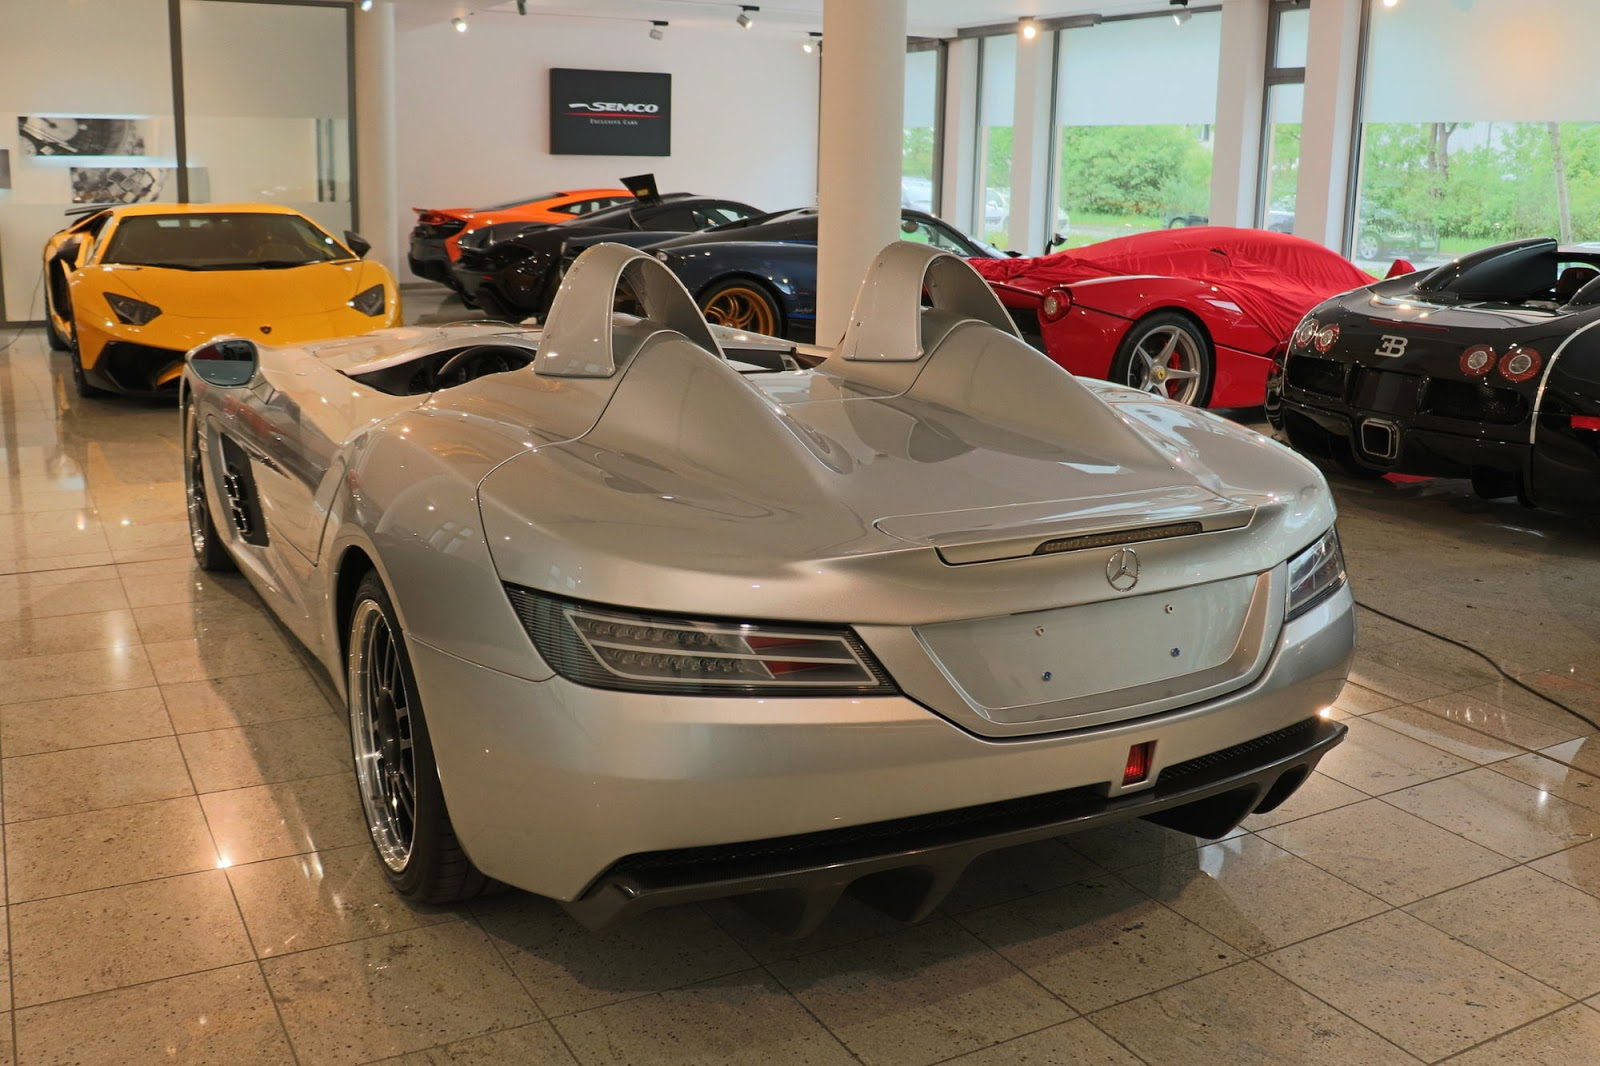 Mercedes benz slr stirling moss for sale in germany for Mercedes benz stirling moss